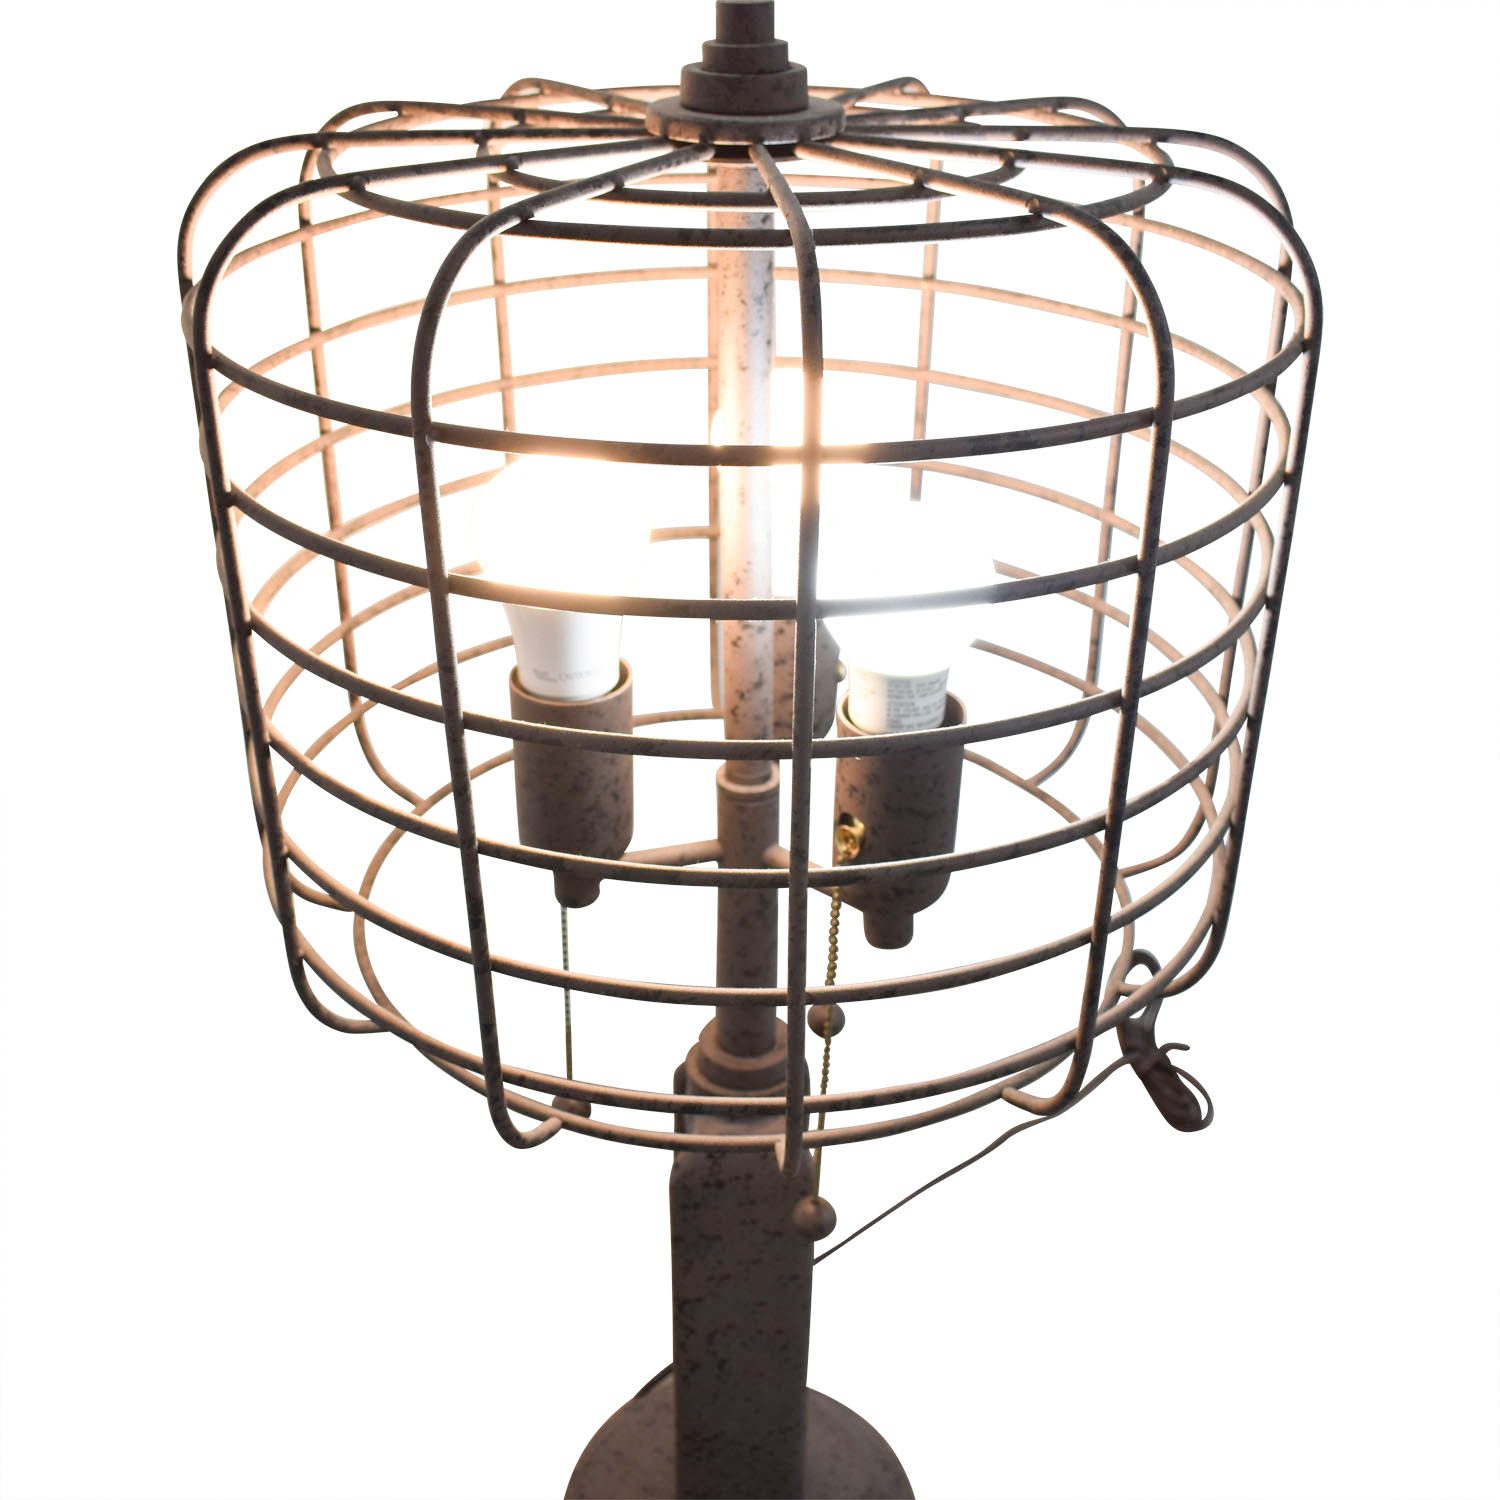 Franklin Iron Works Franklin Iron Works Industrial Cage Edison Bulb Rust Metal Table Lamp Lamps